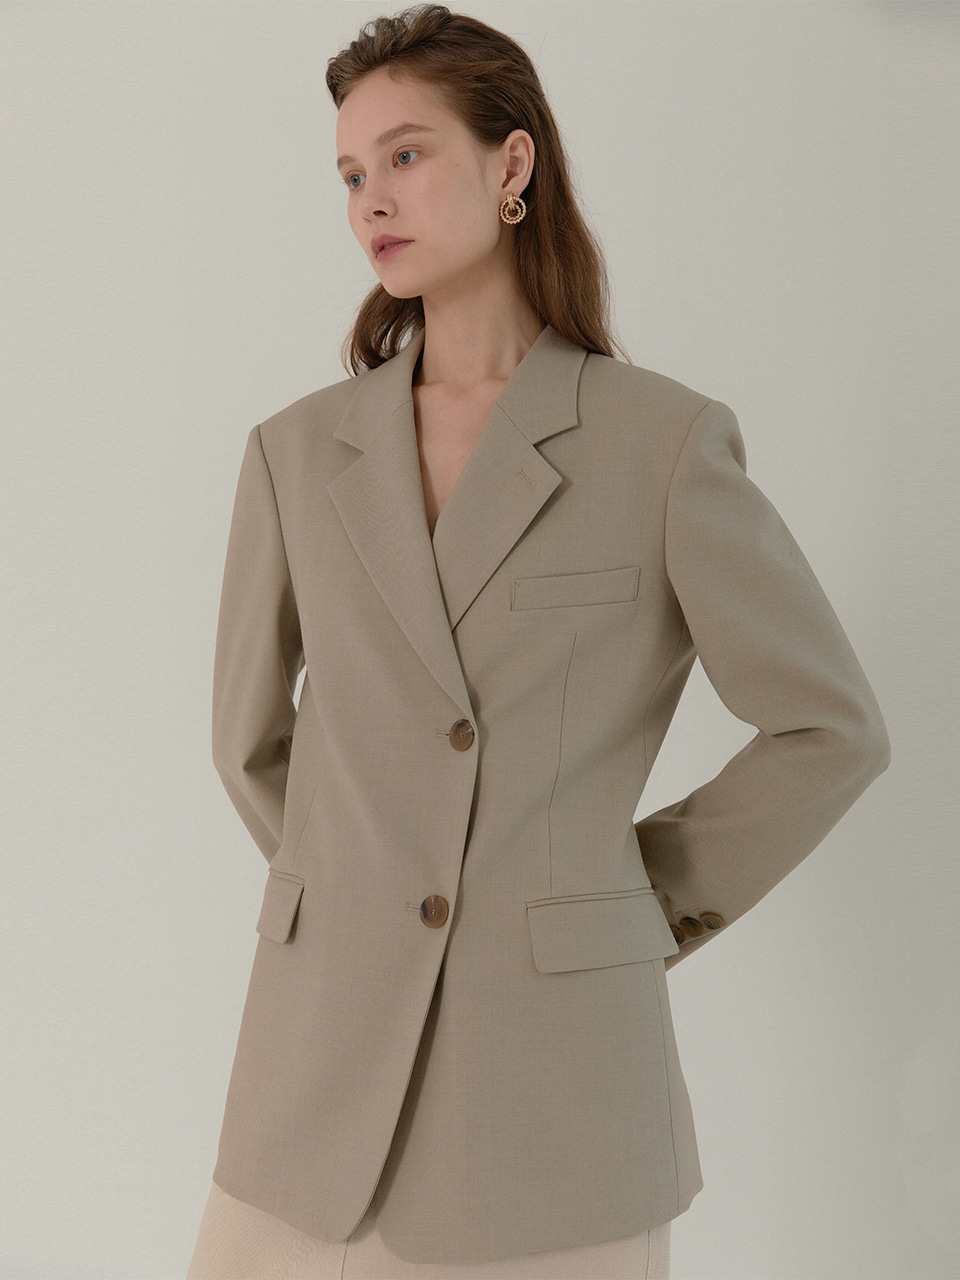 [Low in stock]AMBER Classic Tailored Half Double Jacket_SAND BEIGE